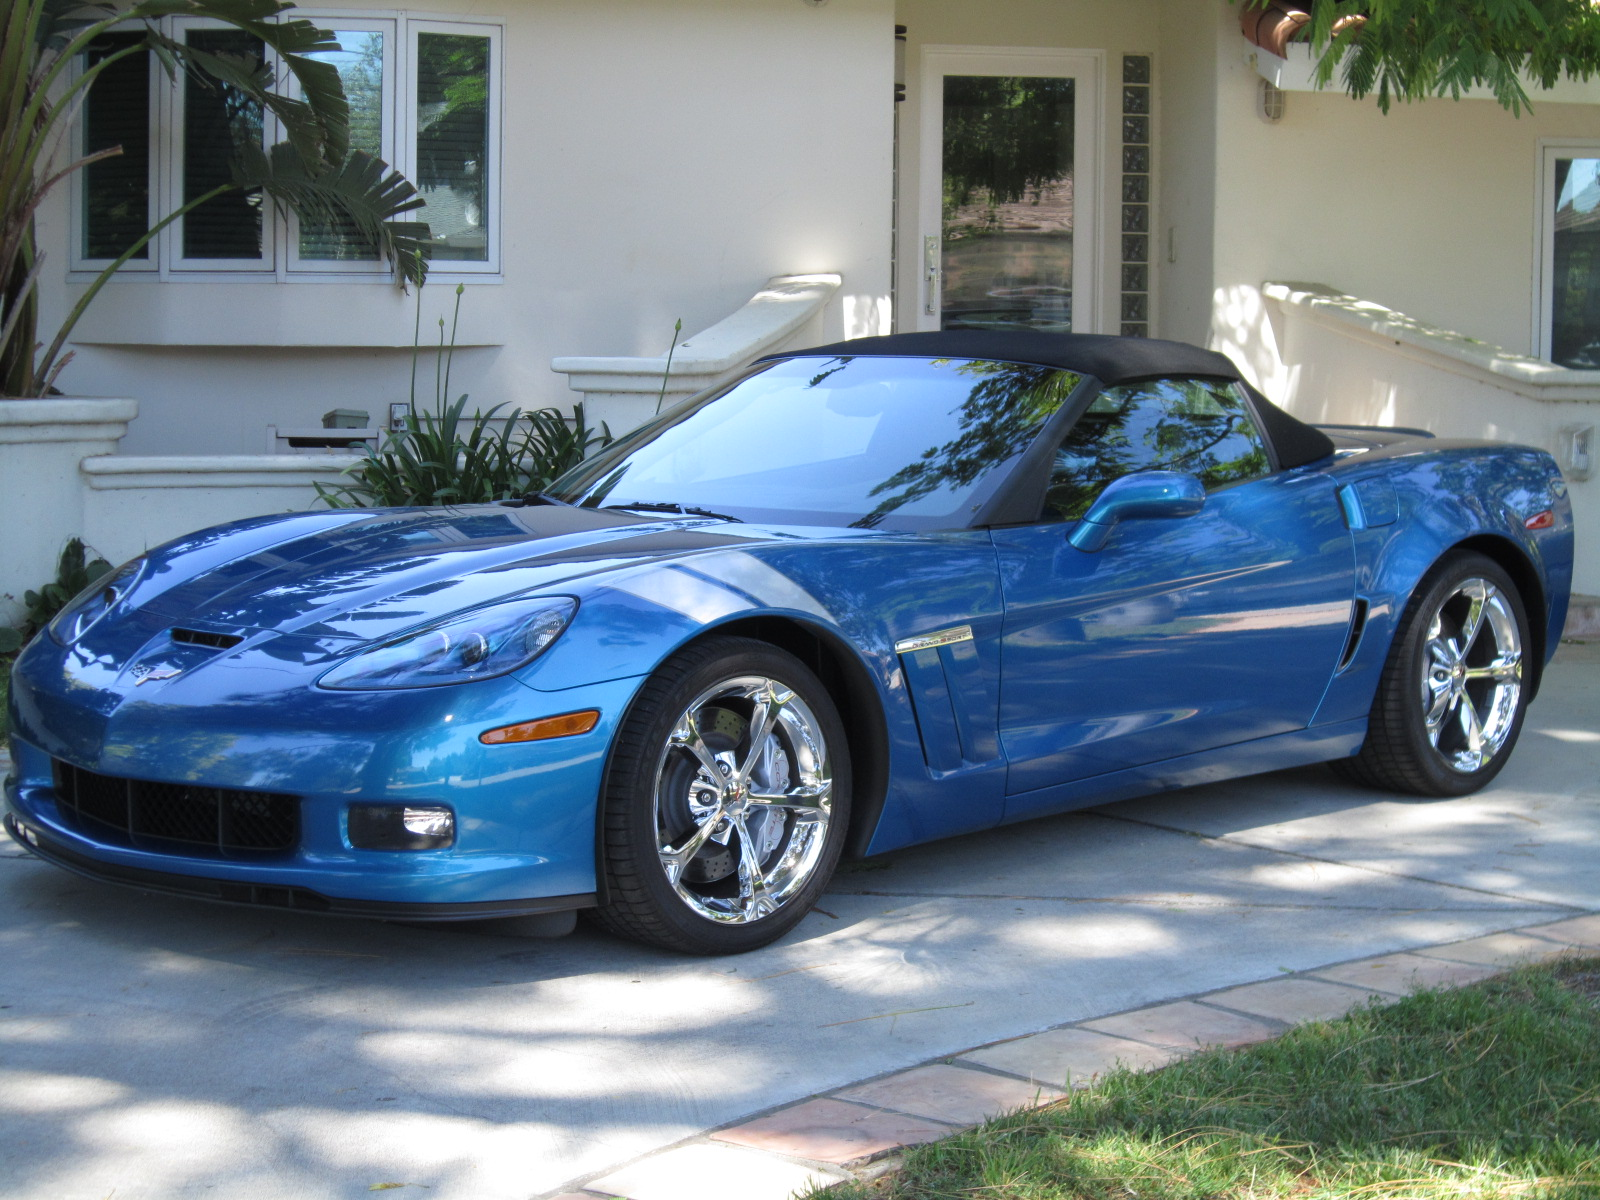 2010 corvette grand sport for sale autos post. Black Bedroom Furniture Sets. Home Design Ideas